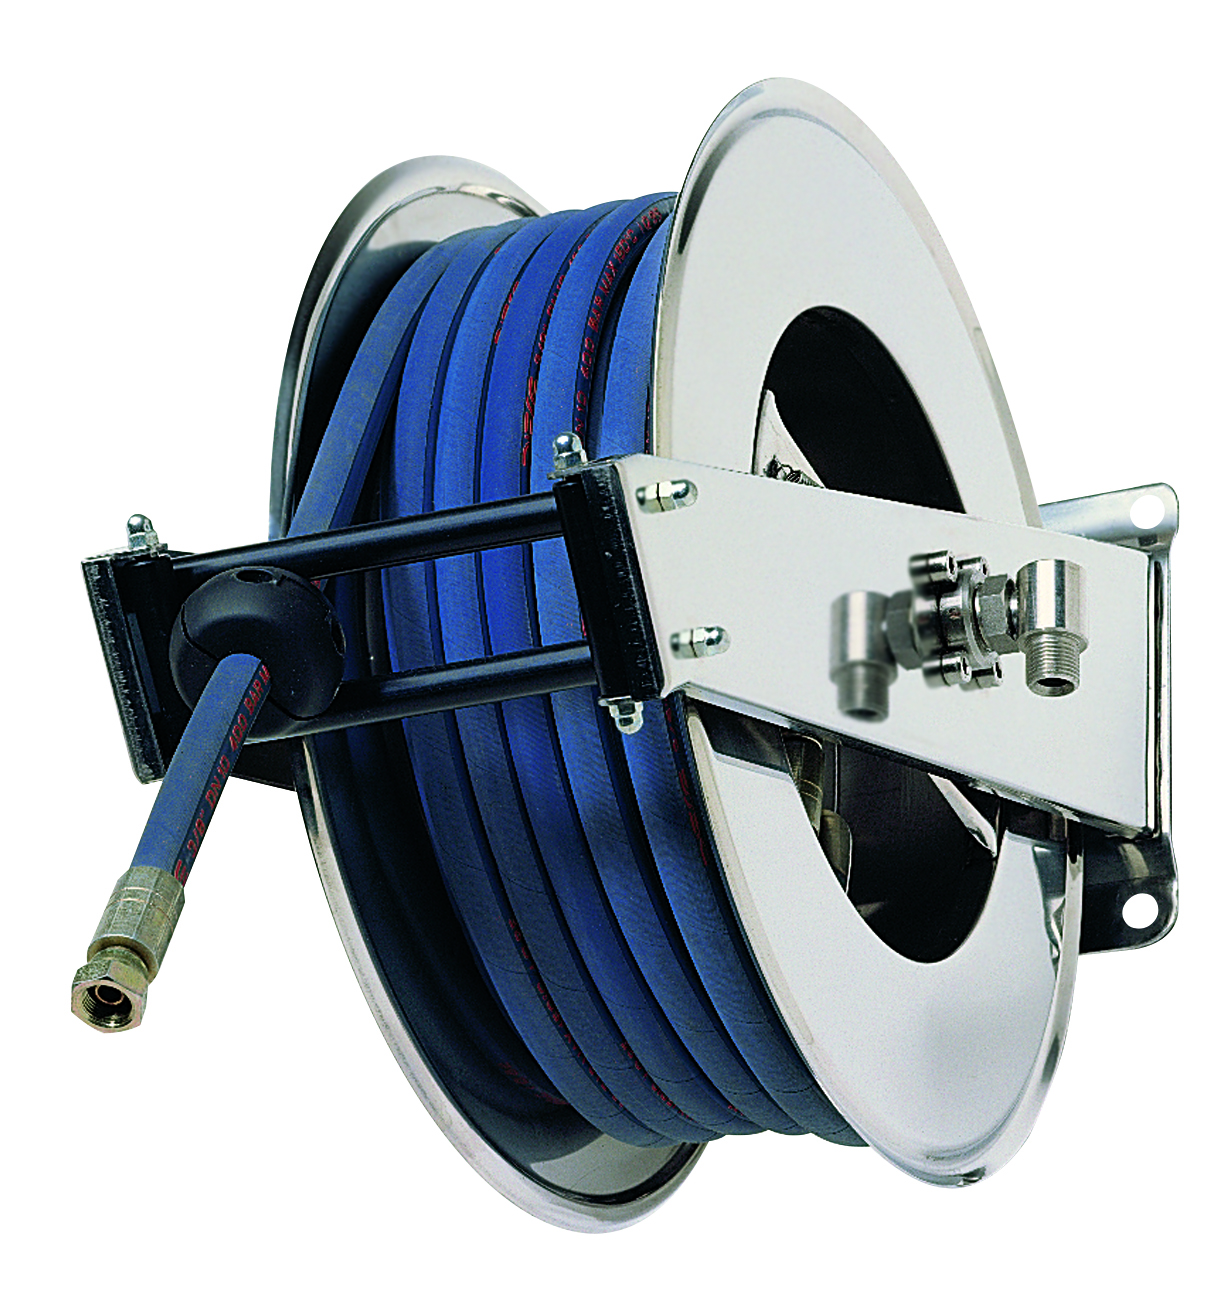 AV1500 600 - Hose reels for Water - High Pressure up to 600 BAR/8700 PSI